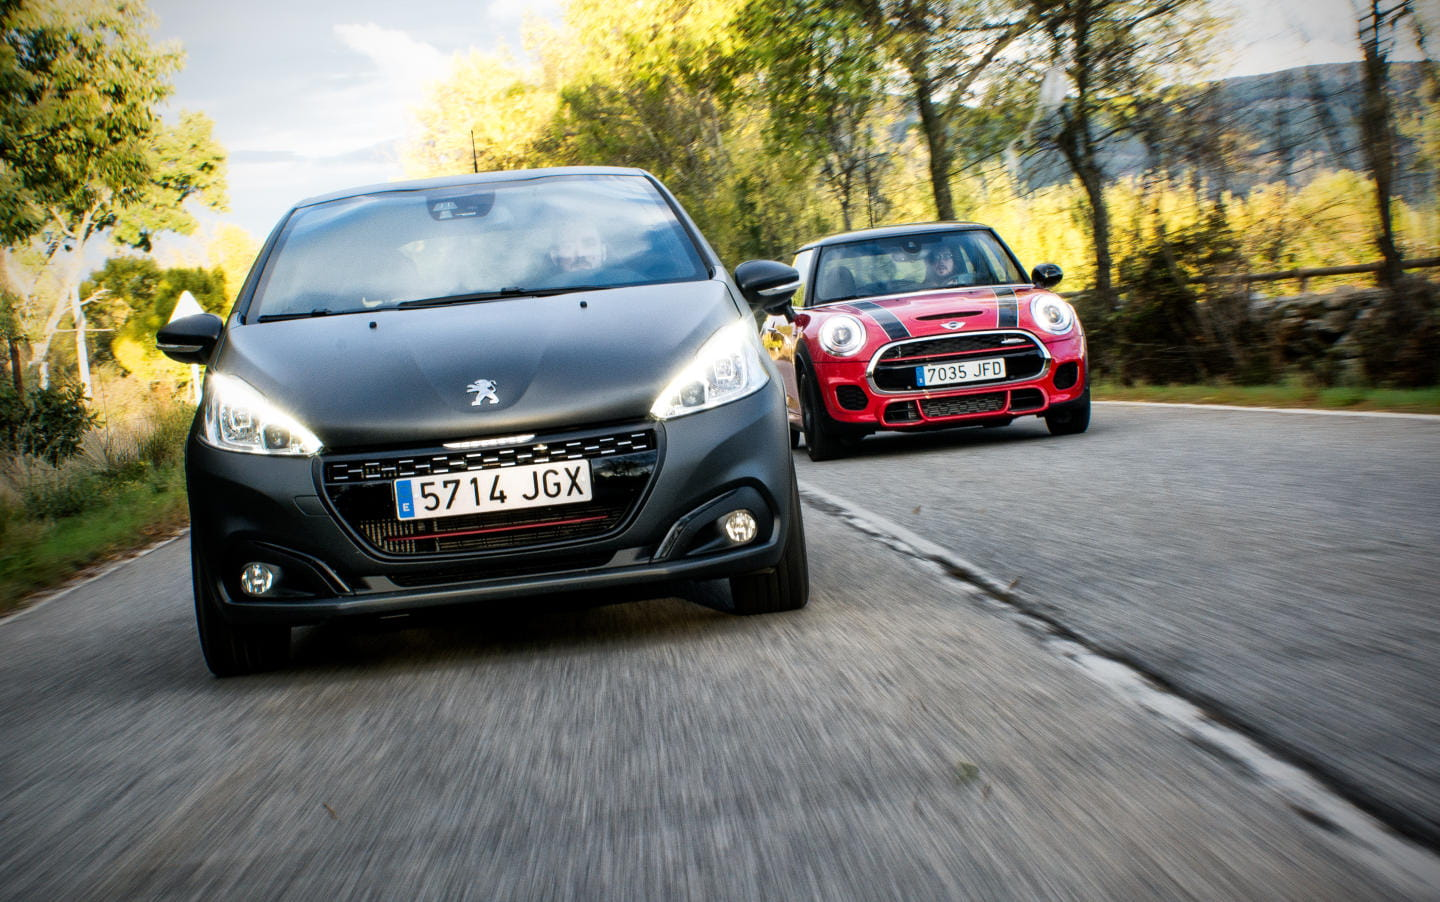 Peugeot_208_GTI_by_psp_mapdm_8